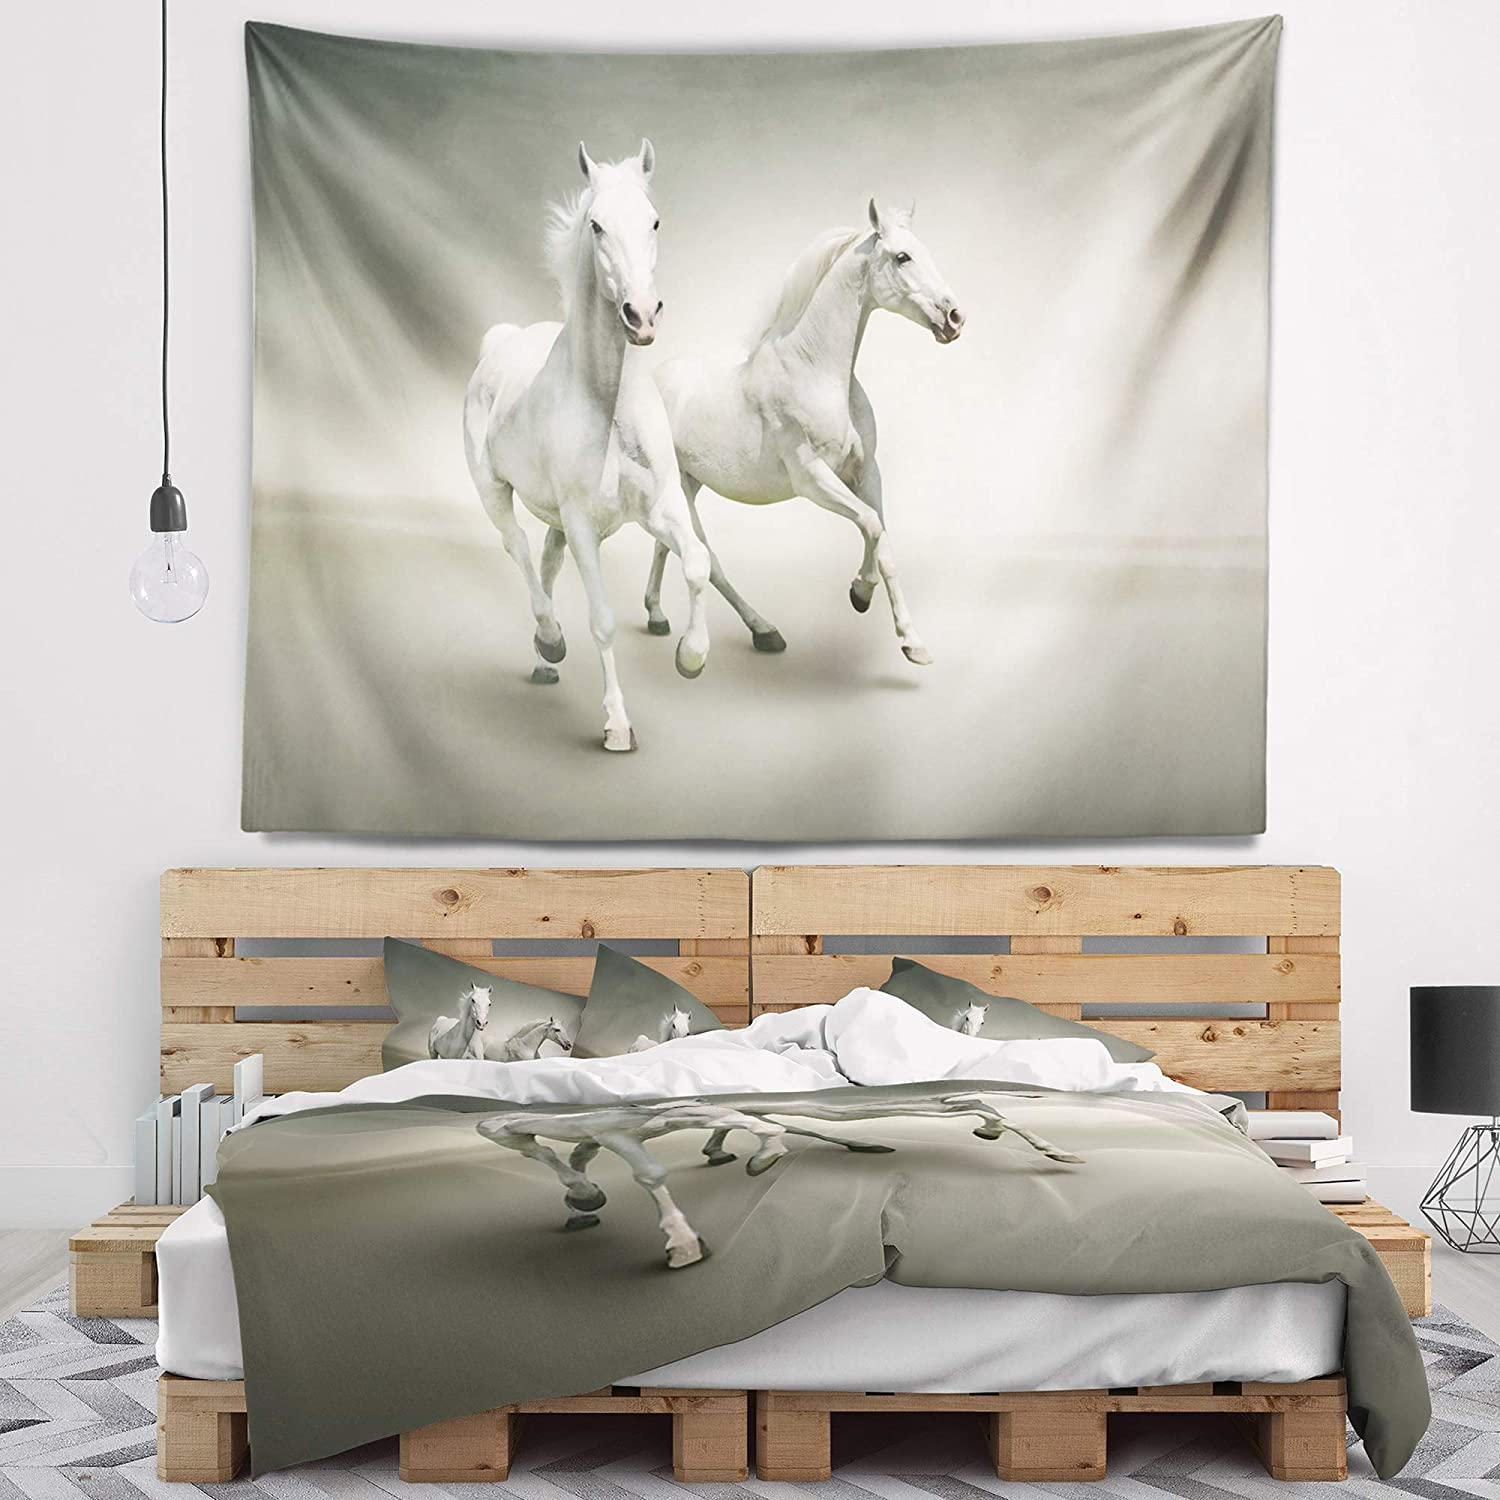 60 in Large Designart TAP13476-60-50 Fast Moving White Horses Animal Blanket D/écor Art for Home and Office Wall Tapestry x 50 in